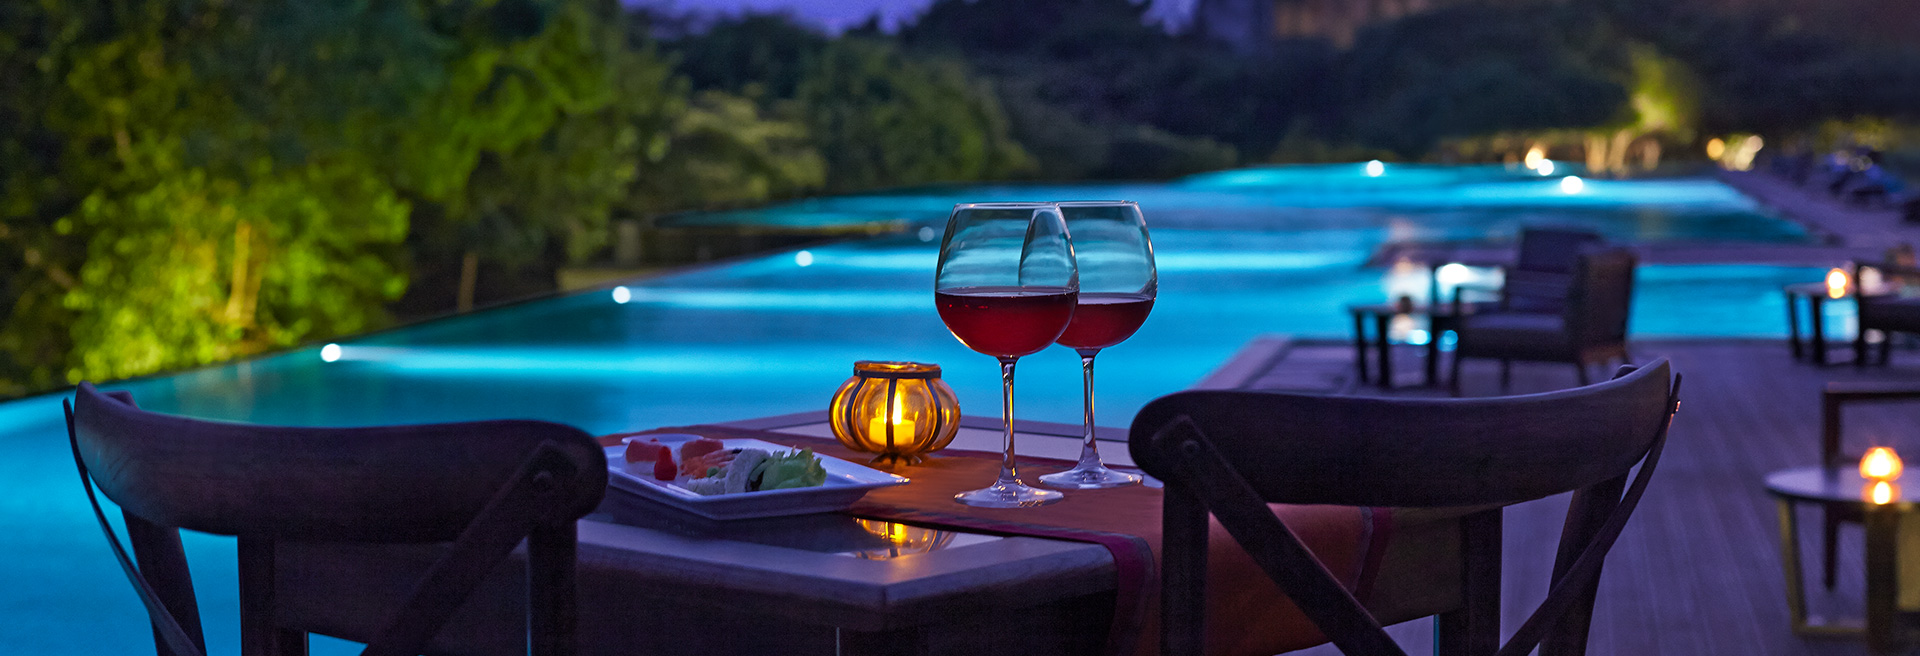 two glasses of wine set out for dining at night